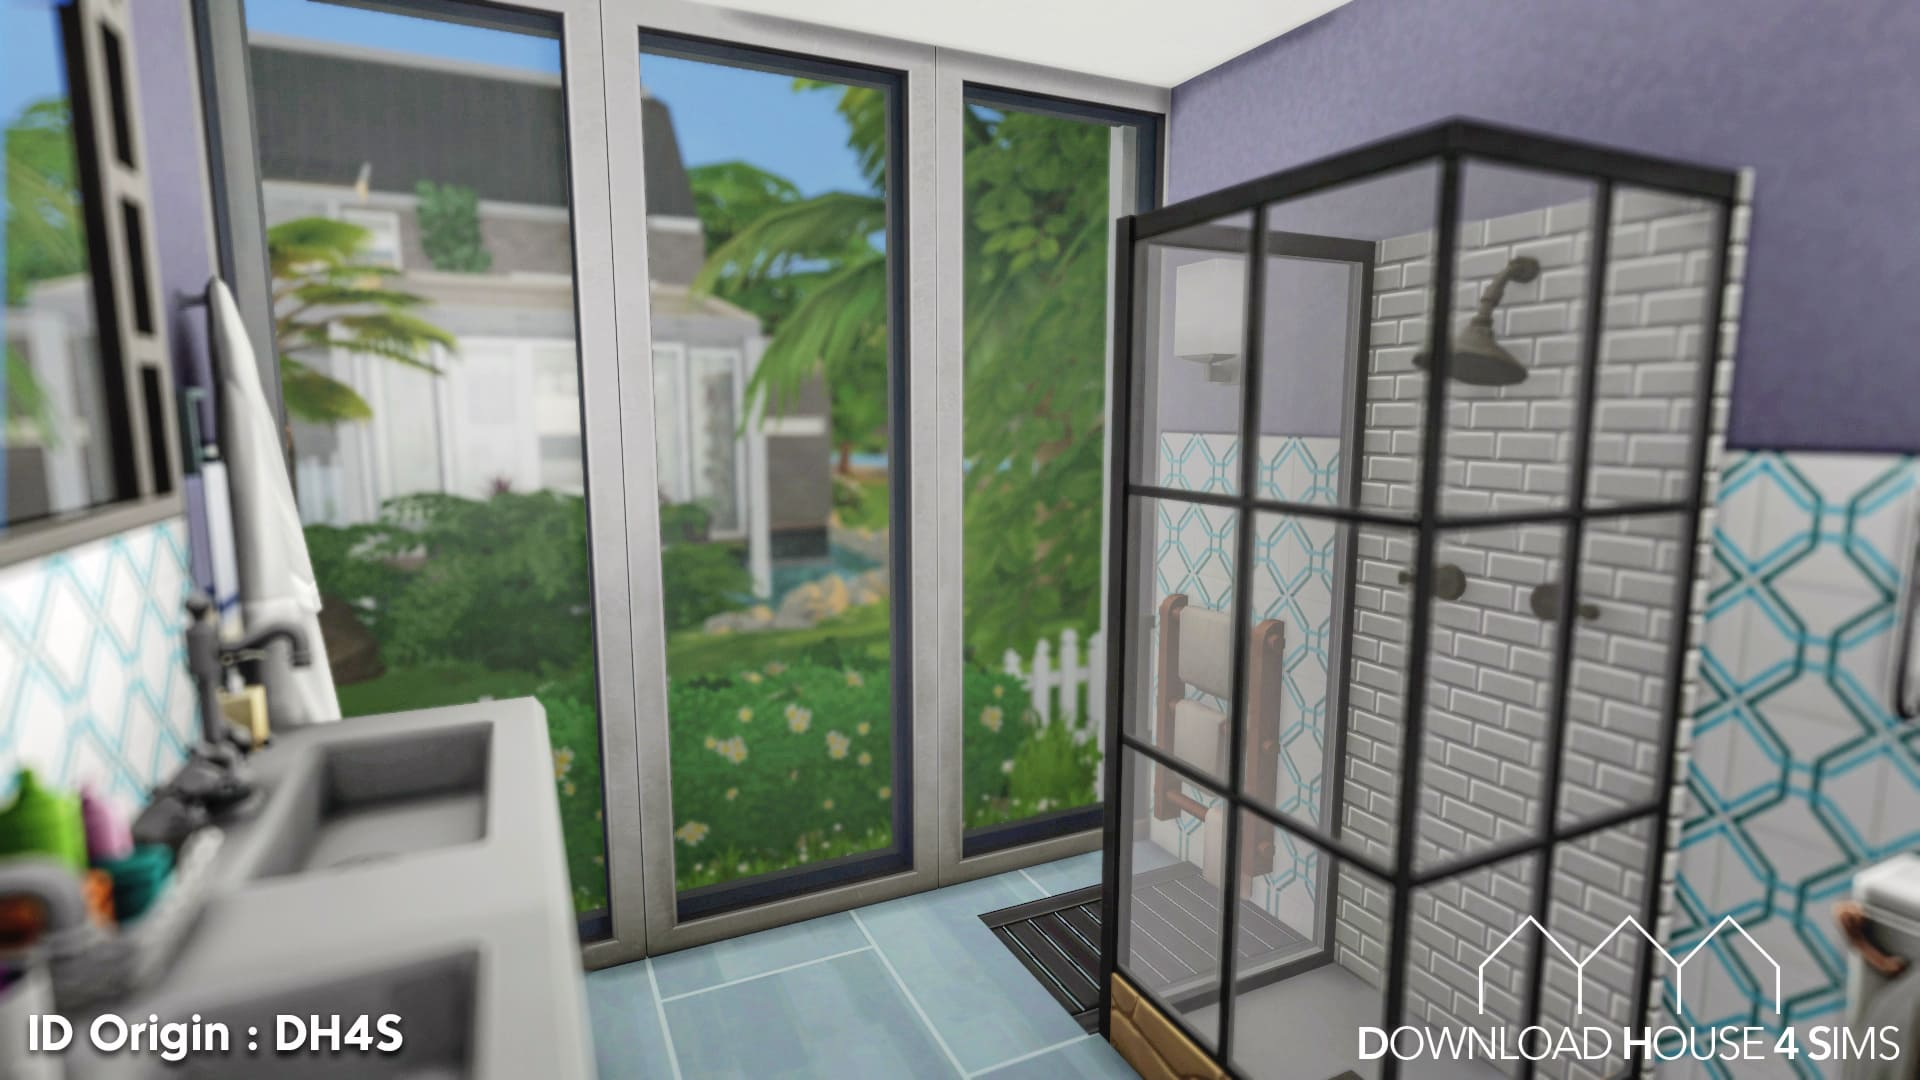 Family-Cottage-Sims-4-DH4S-download-house-4-sims-17